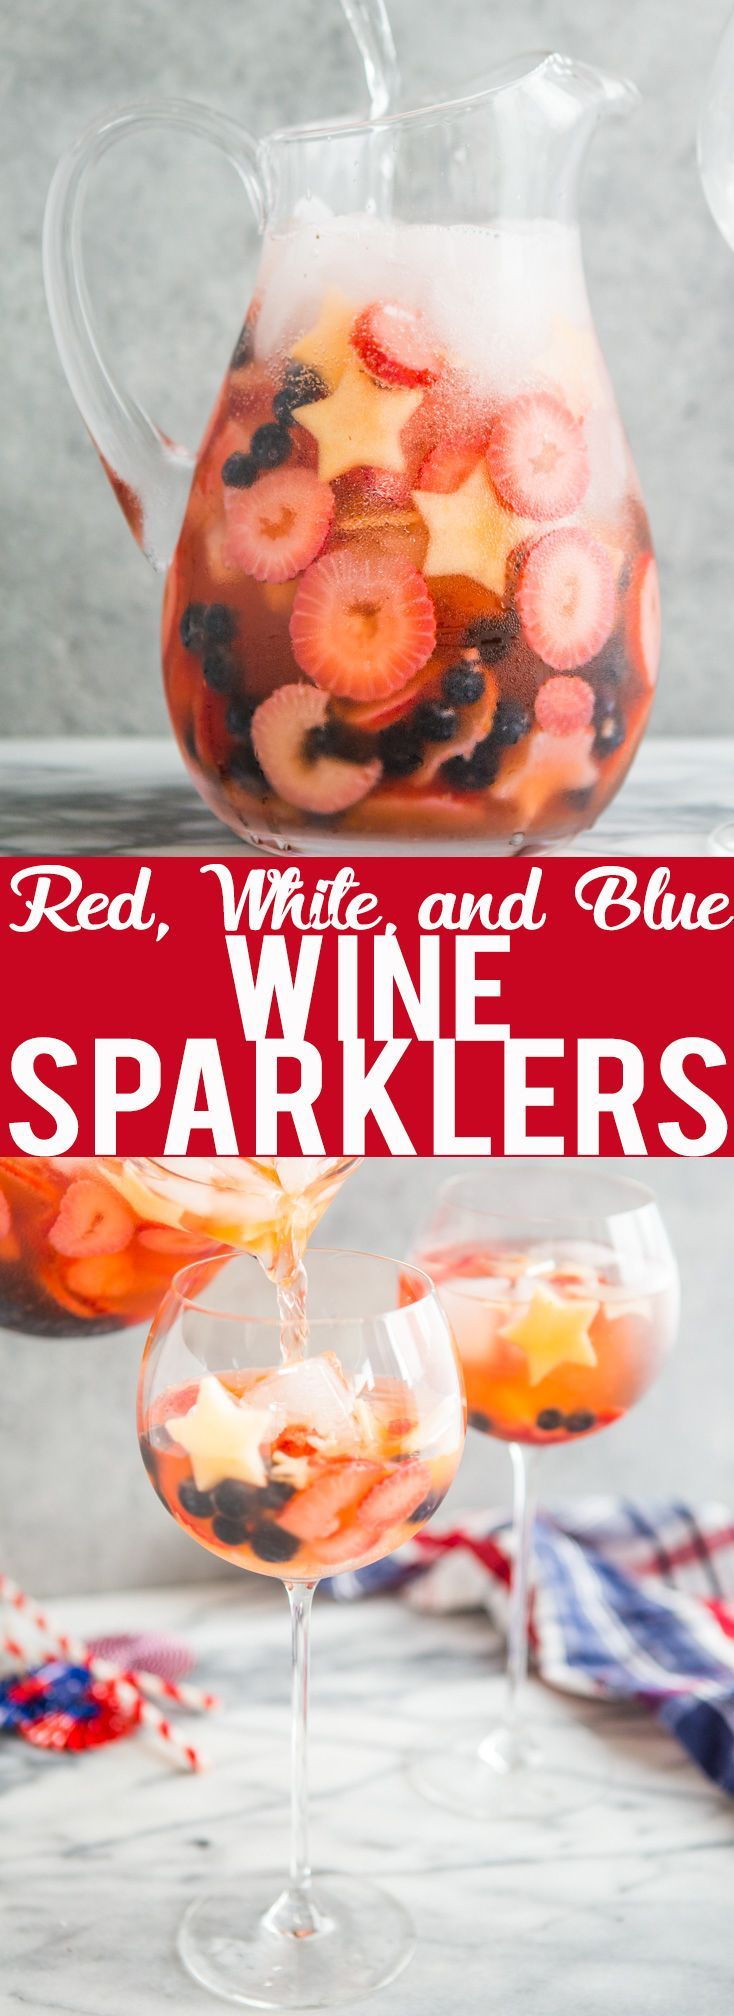 These Red, White, and Blue Wine Sparklers are the perfect festive drink for the Fourth of July. Refreshing and light on alcohol makes for easy drinking on a hot summer day!  patriotic drinks   red white and blue drinks   patriotic recipes   red white and blue recipe   fourth of july recipe